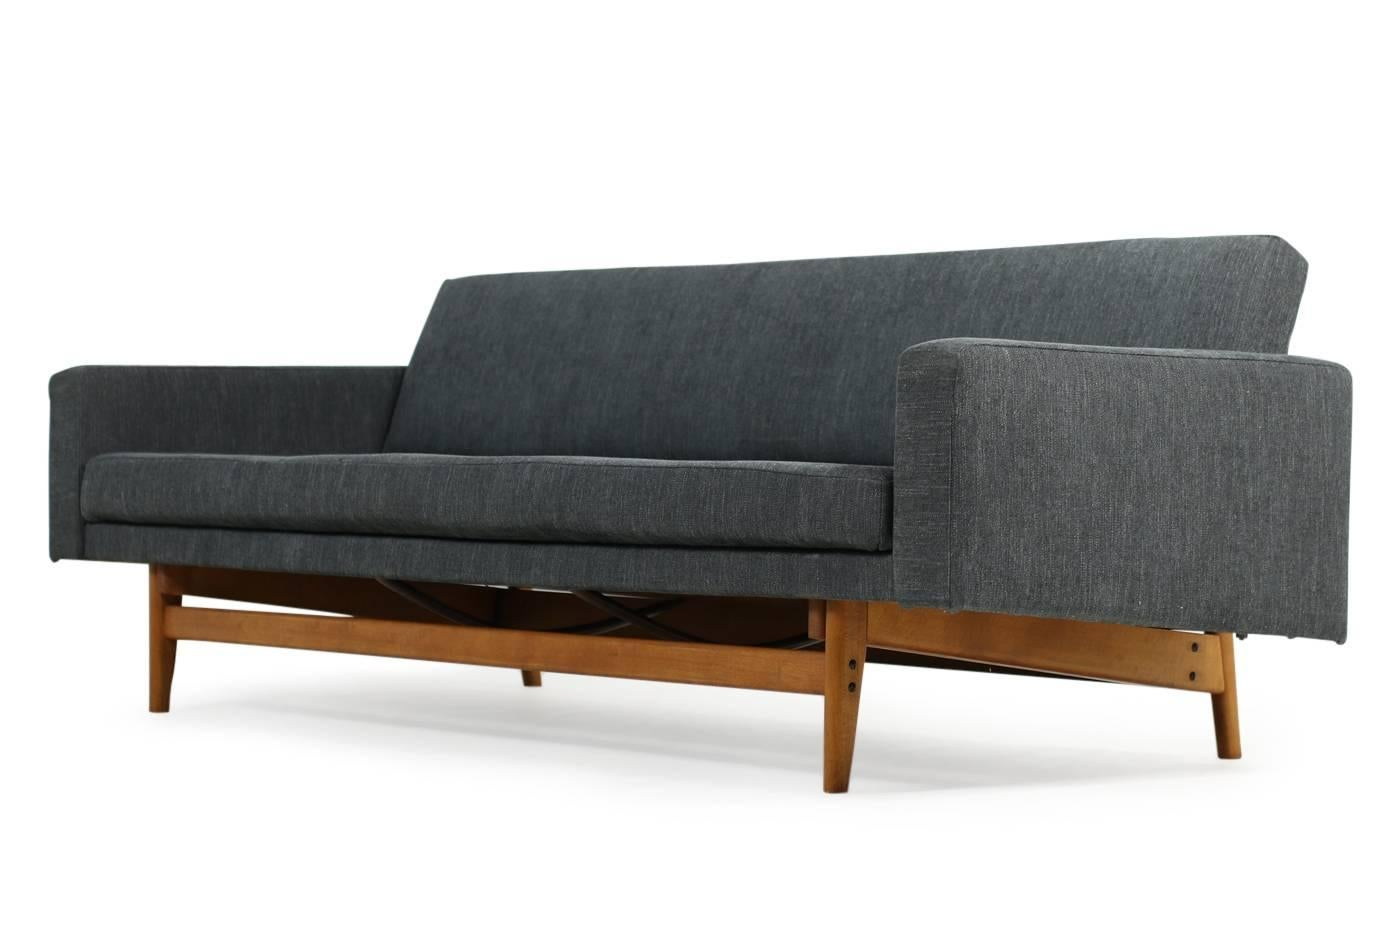 Exceptional 1960s Daybed By Karl Erik Ekselius For Joc Sweden, Scandinavian Modern, Sofa  For Sale At 1stdibs